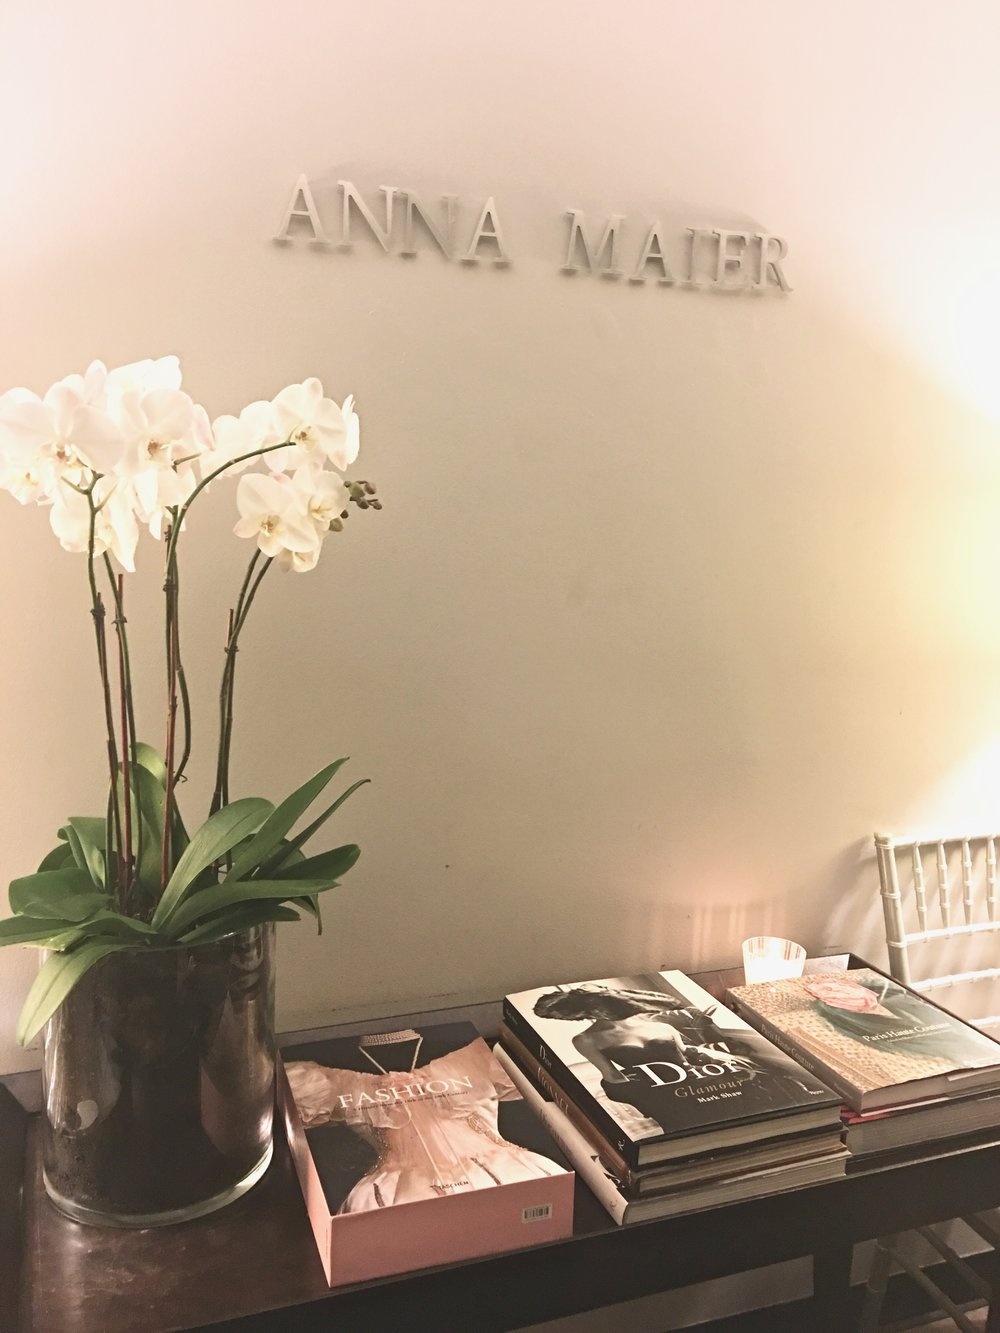 Las Vegas Wedding Planner Andrea Eppolito attends the Anna Maier couture show at Bridal Fashion Week 2017 in NYC.